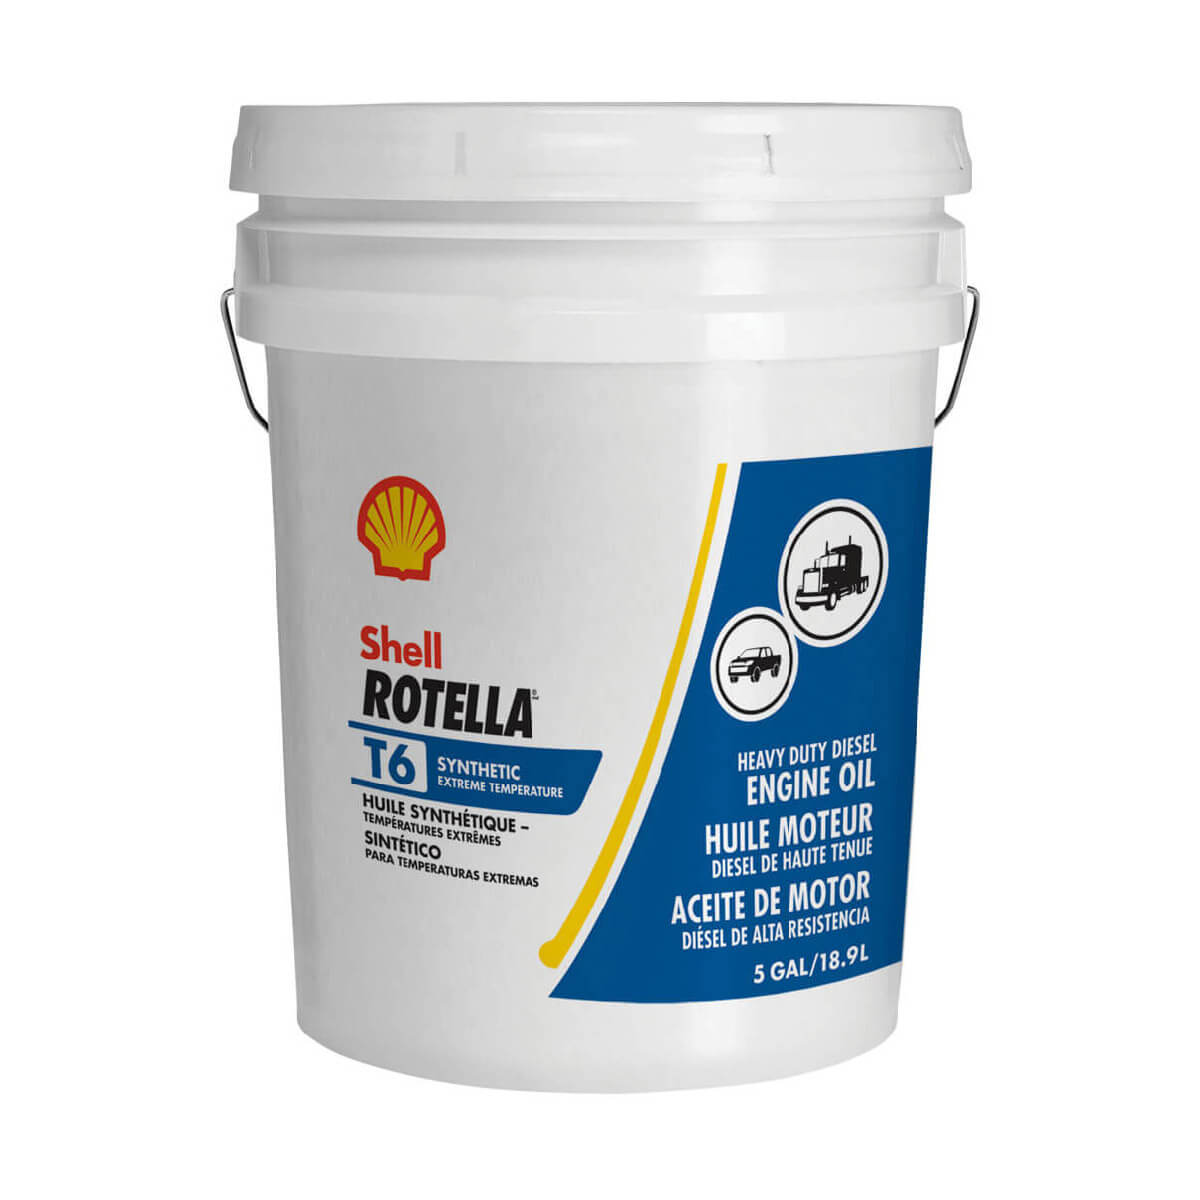 Shell Rotella T6 Triple Protection Synthetic 5W-40 - 18.9 L